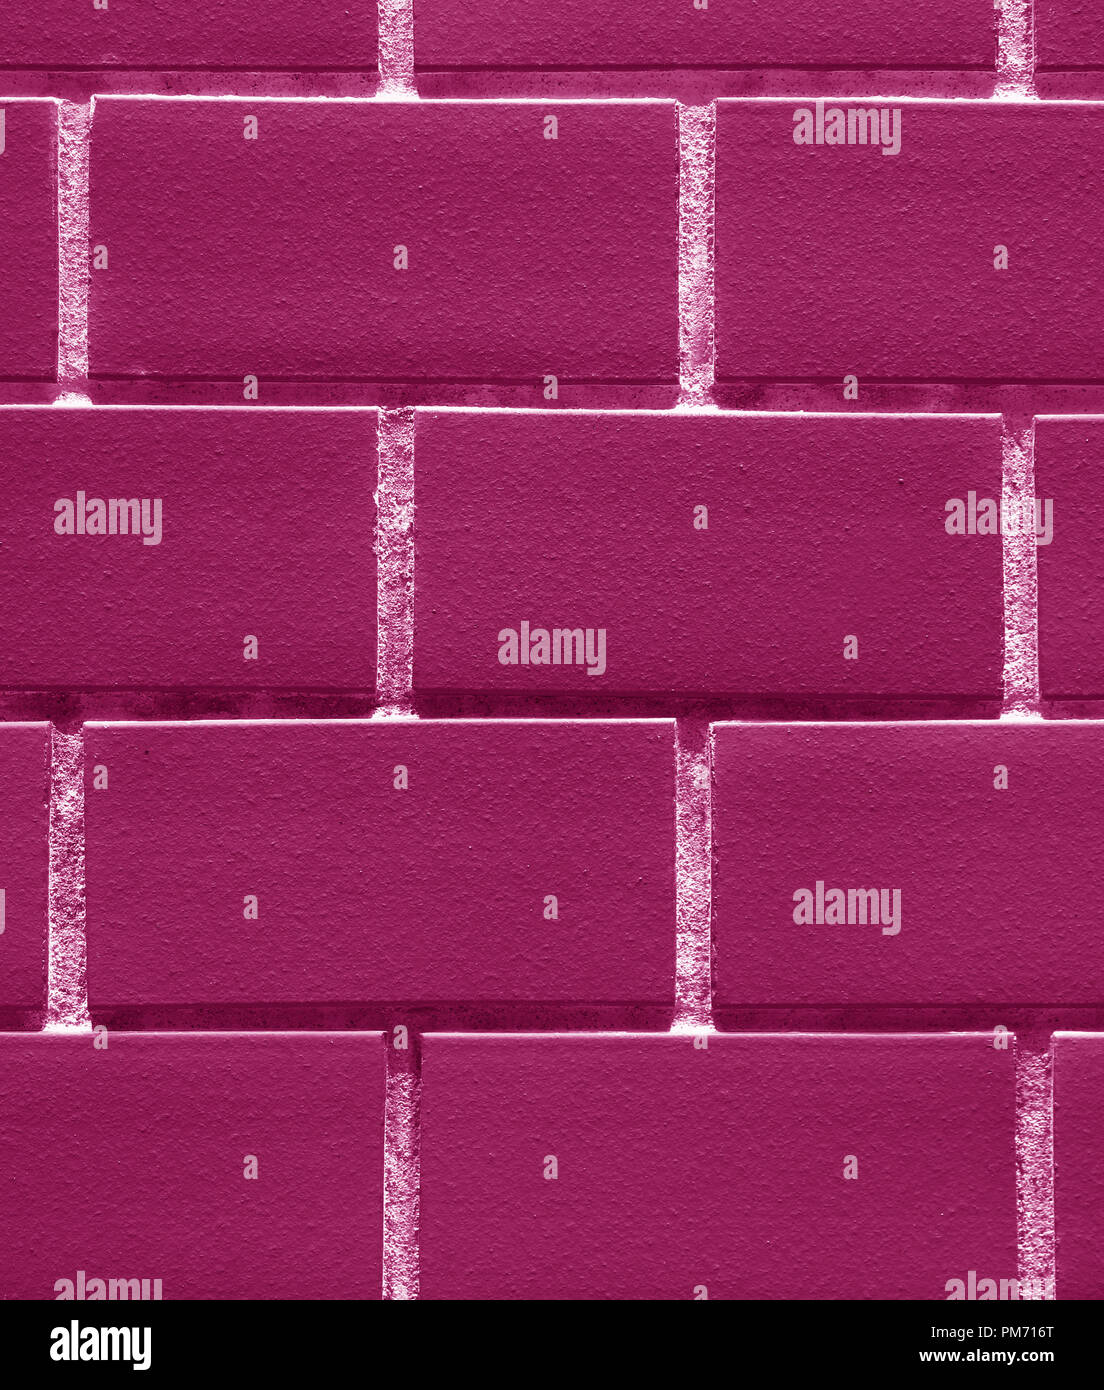 Vertical Photo of Bricks Wall in Red Purple or Magenta Color for Background, Texture, Pattern - Stock Image